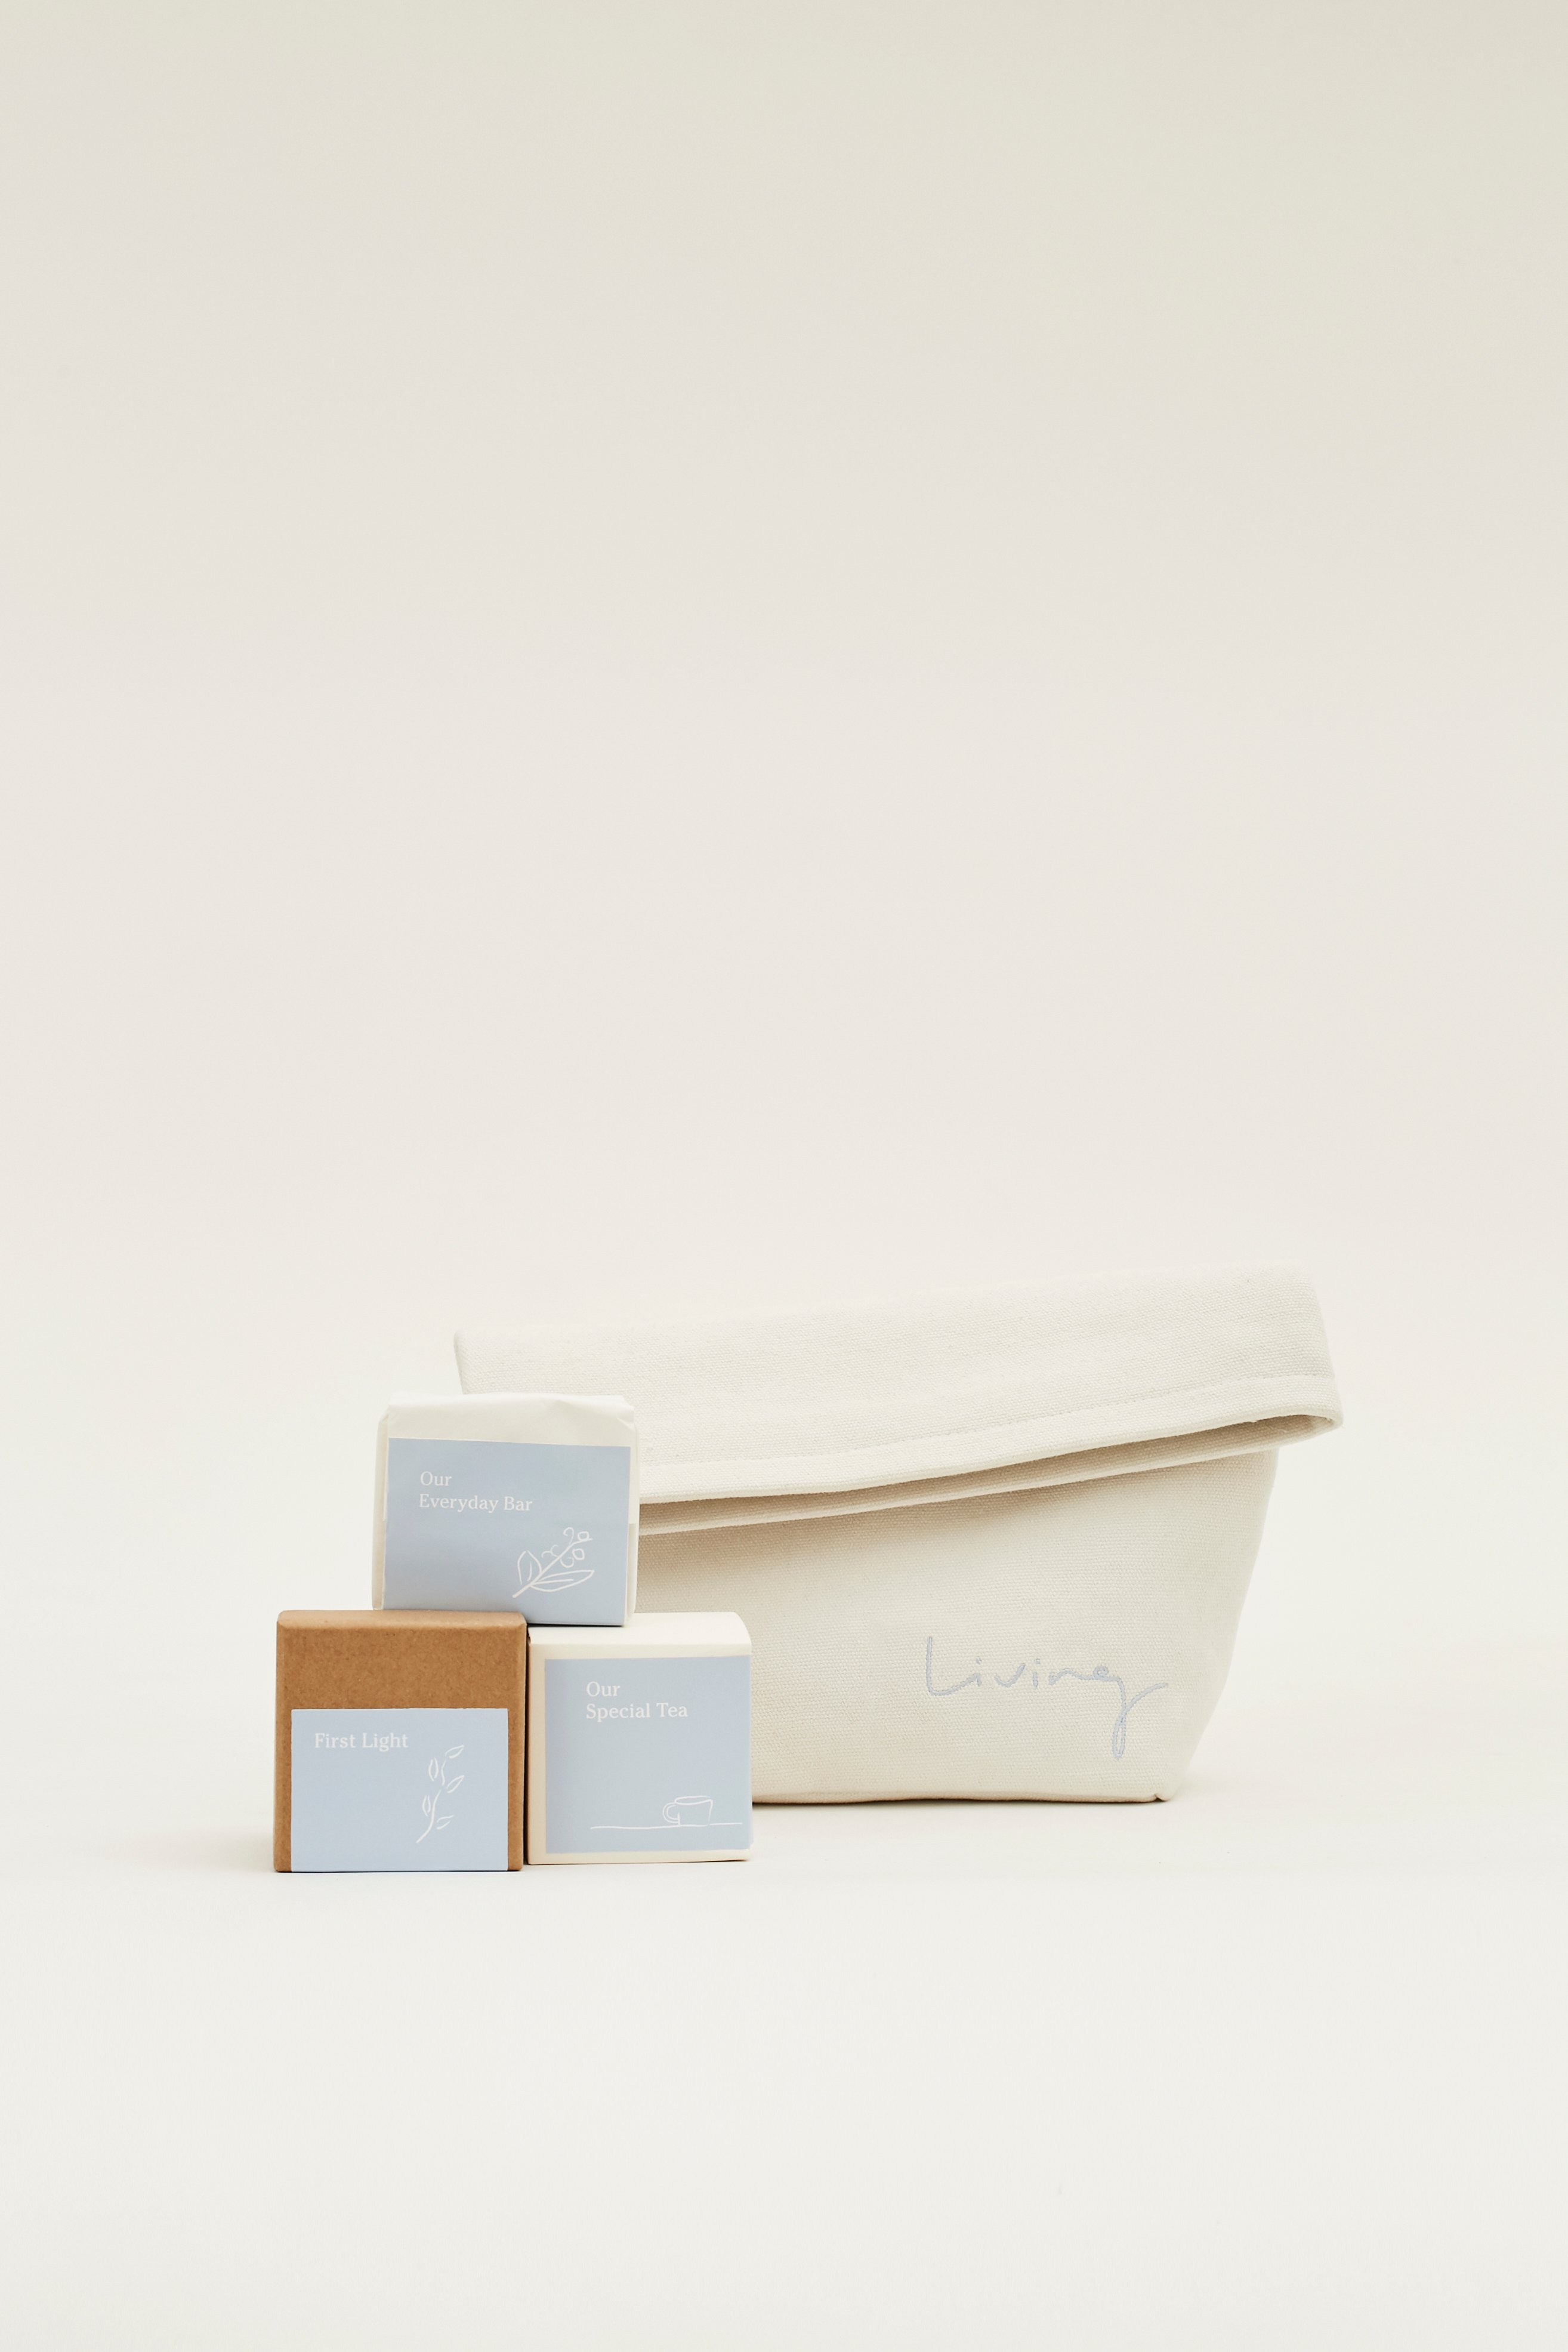 [Online Exclusive] Our Day Kit